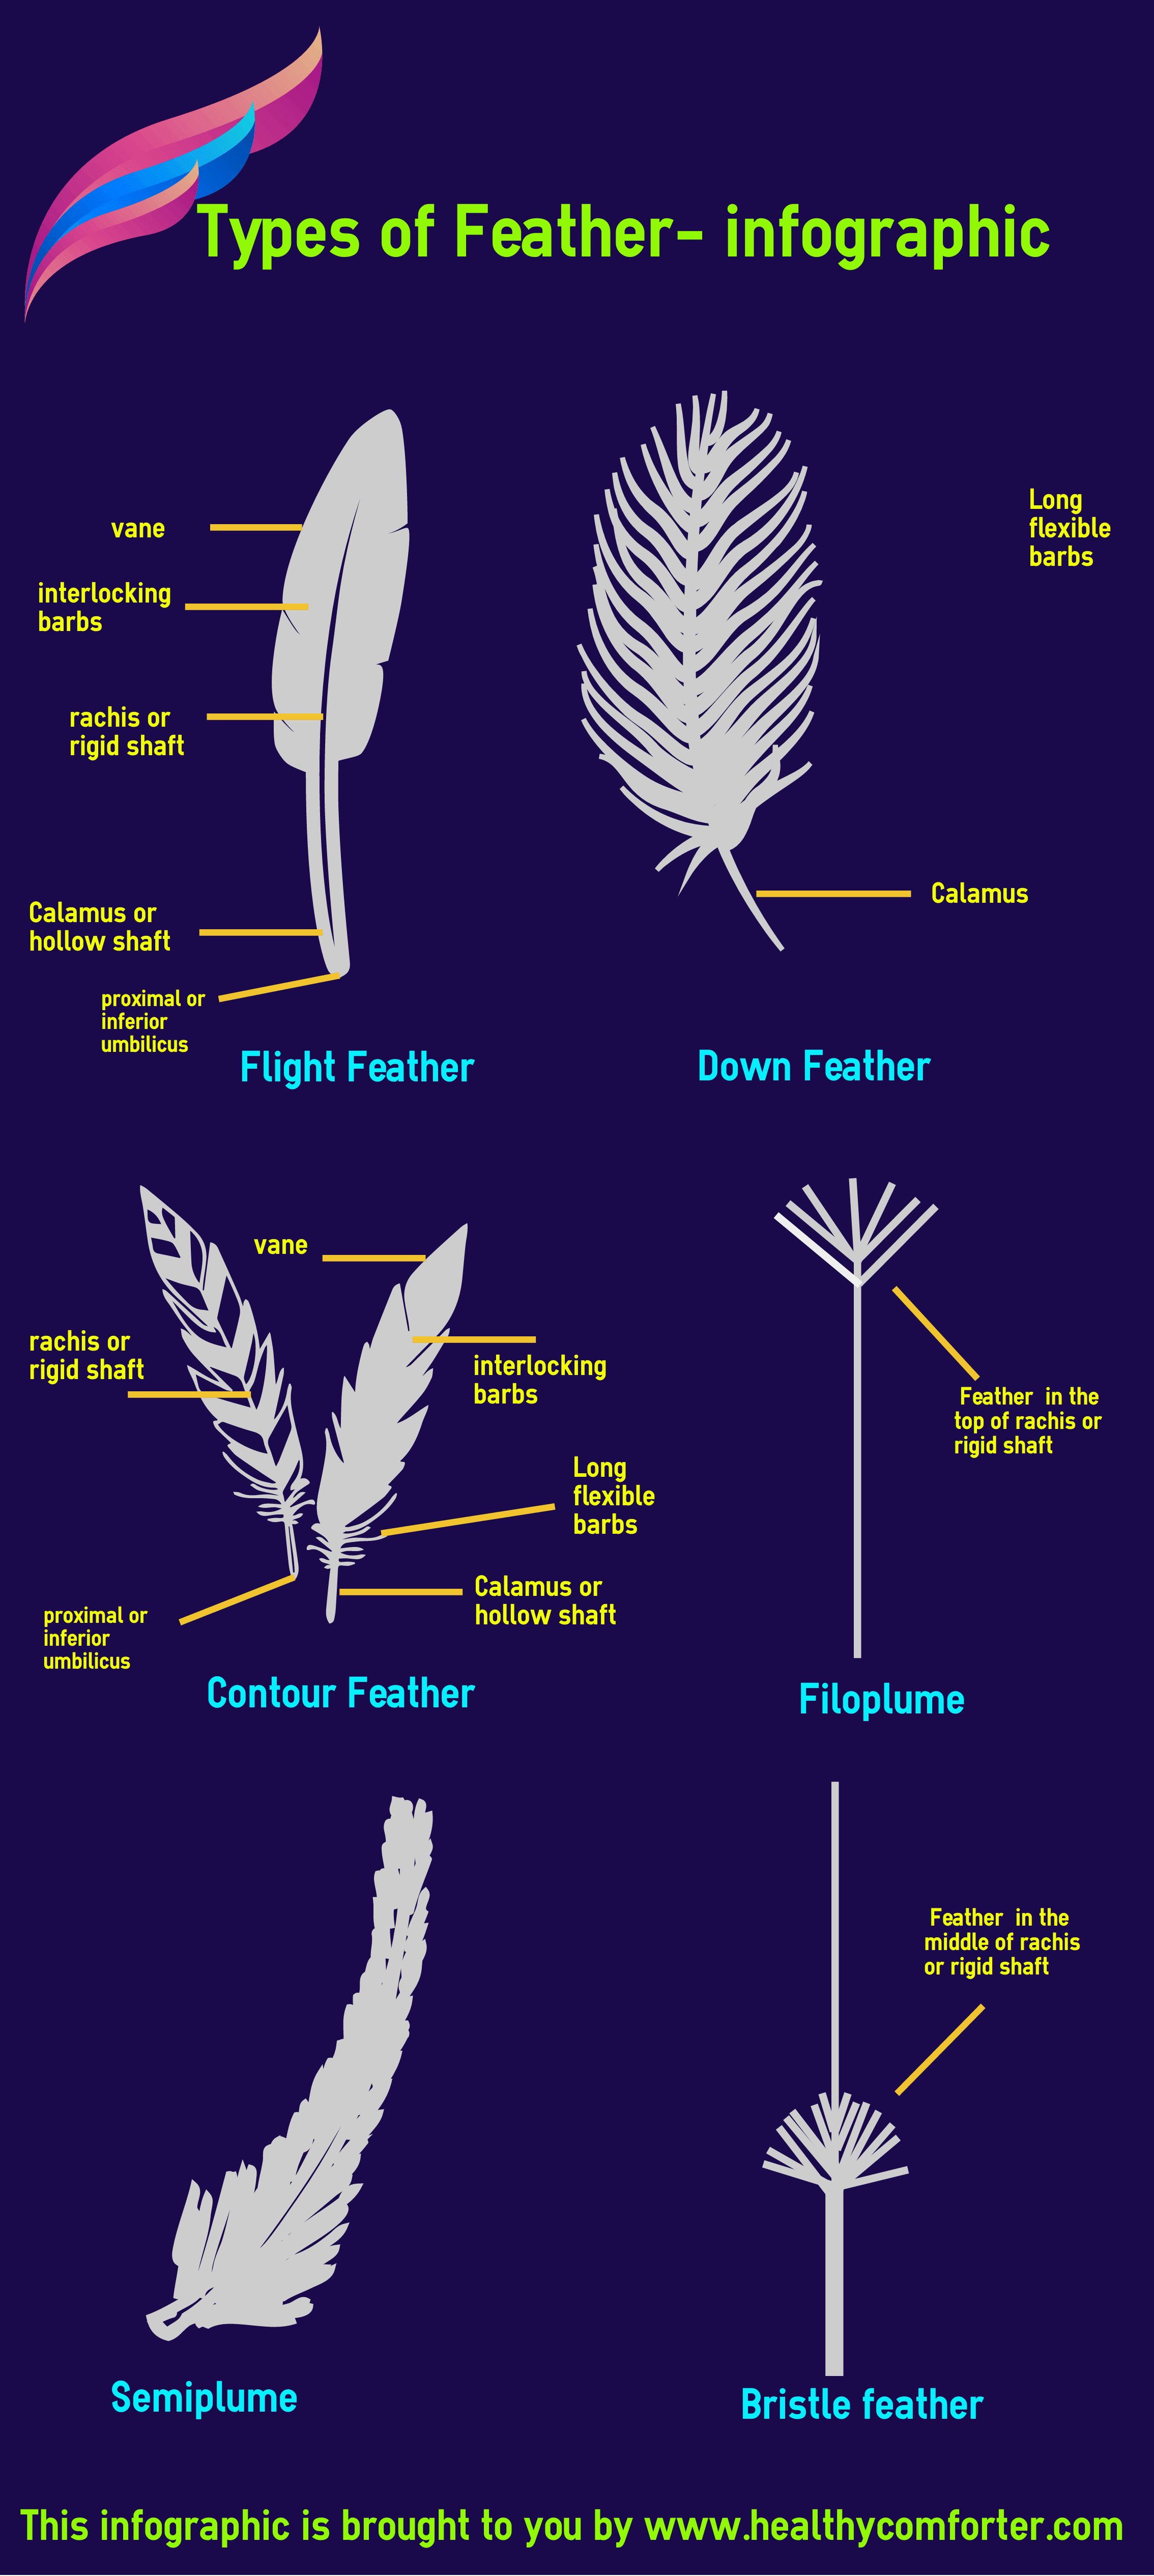 Types of feather